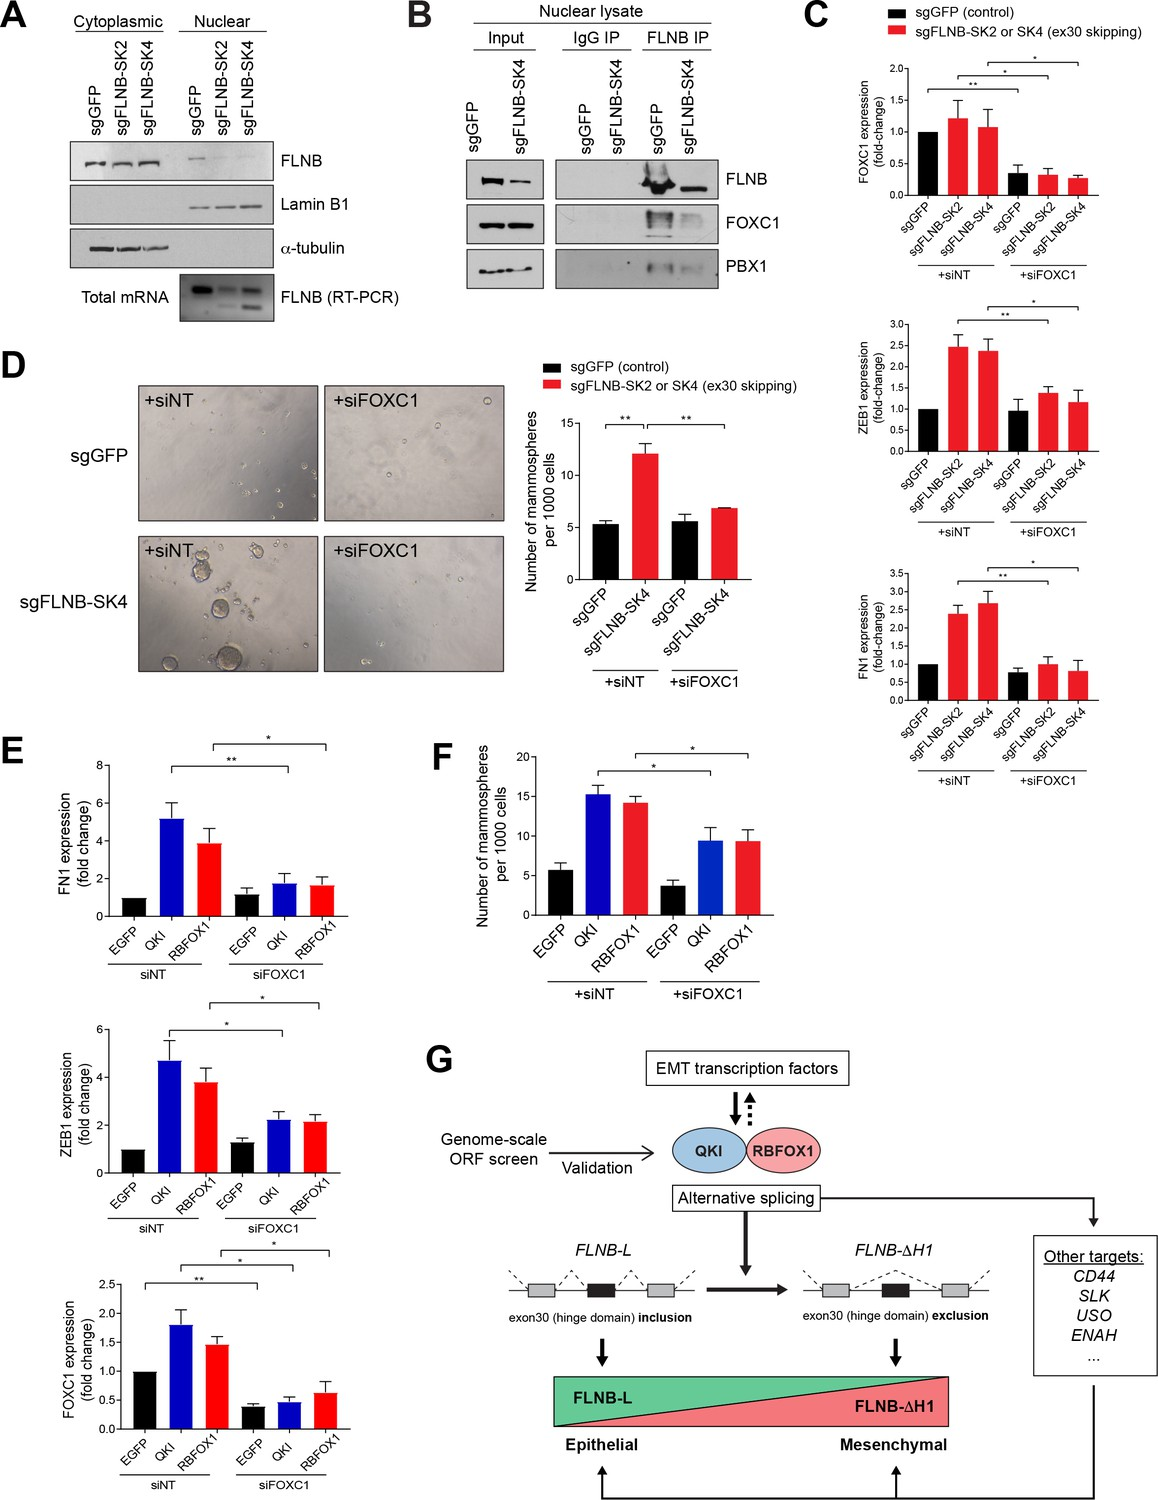 An Alternative Splicing Switch In Flnb Promotes The Mesenchymal Cell Ledcircuitcalculator Circuit Playground 163 Resistor Power Emt Mediated By Isoform Switching Is Dependent On Foxc1 Transcription Factor